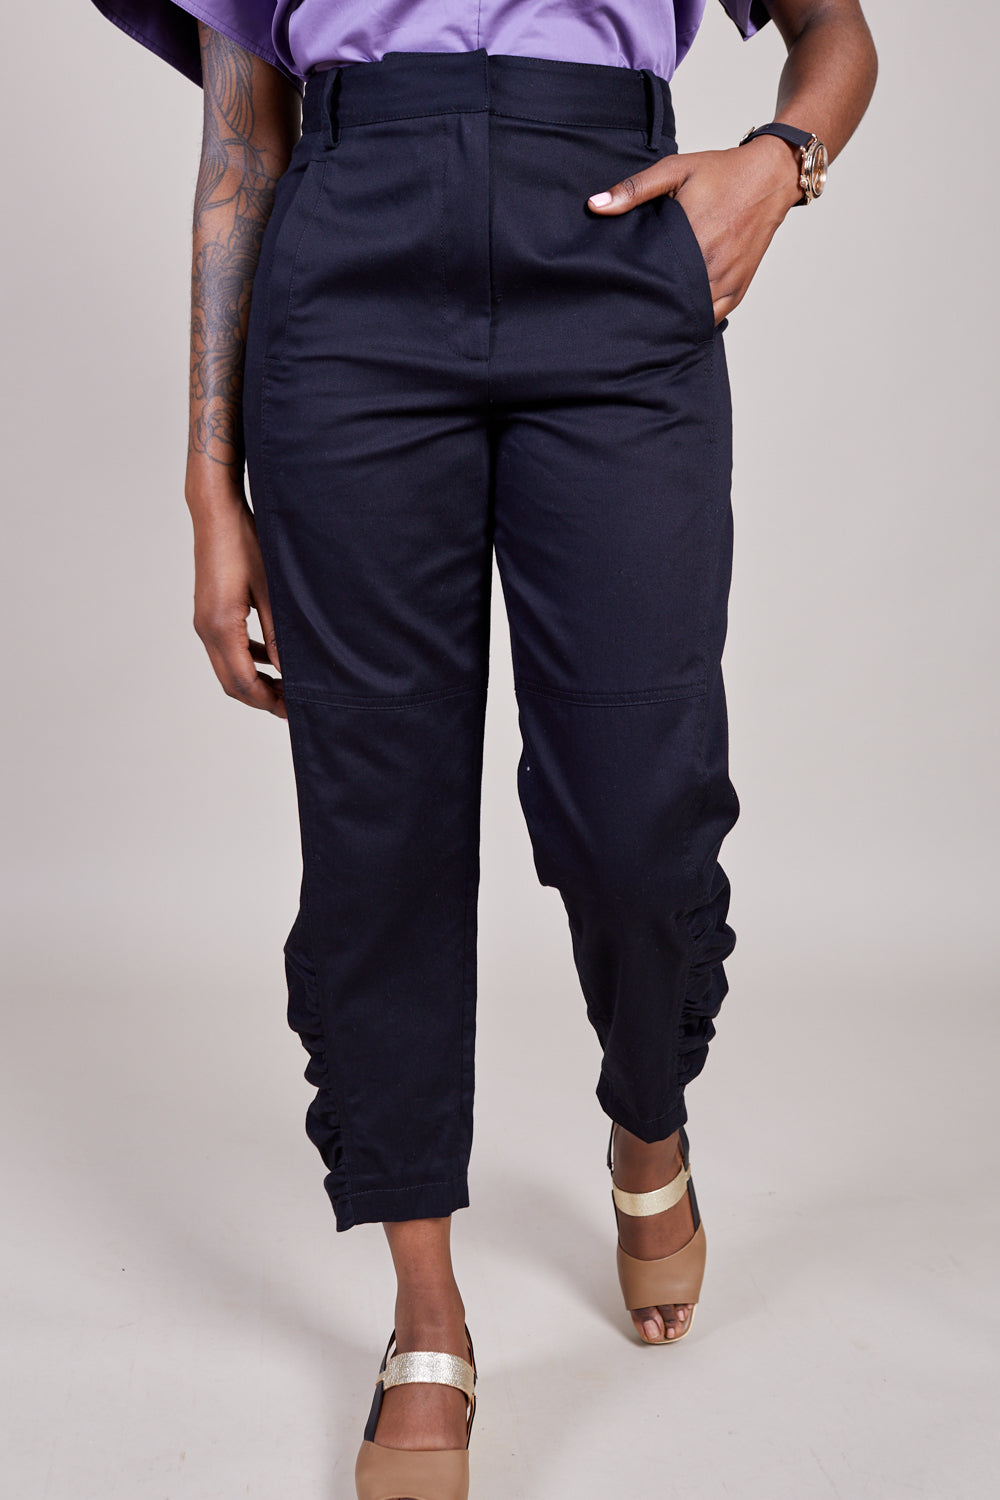 Harrison Chino Ruched Pant in Black